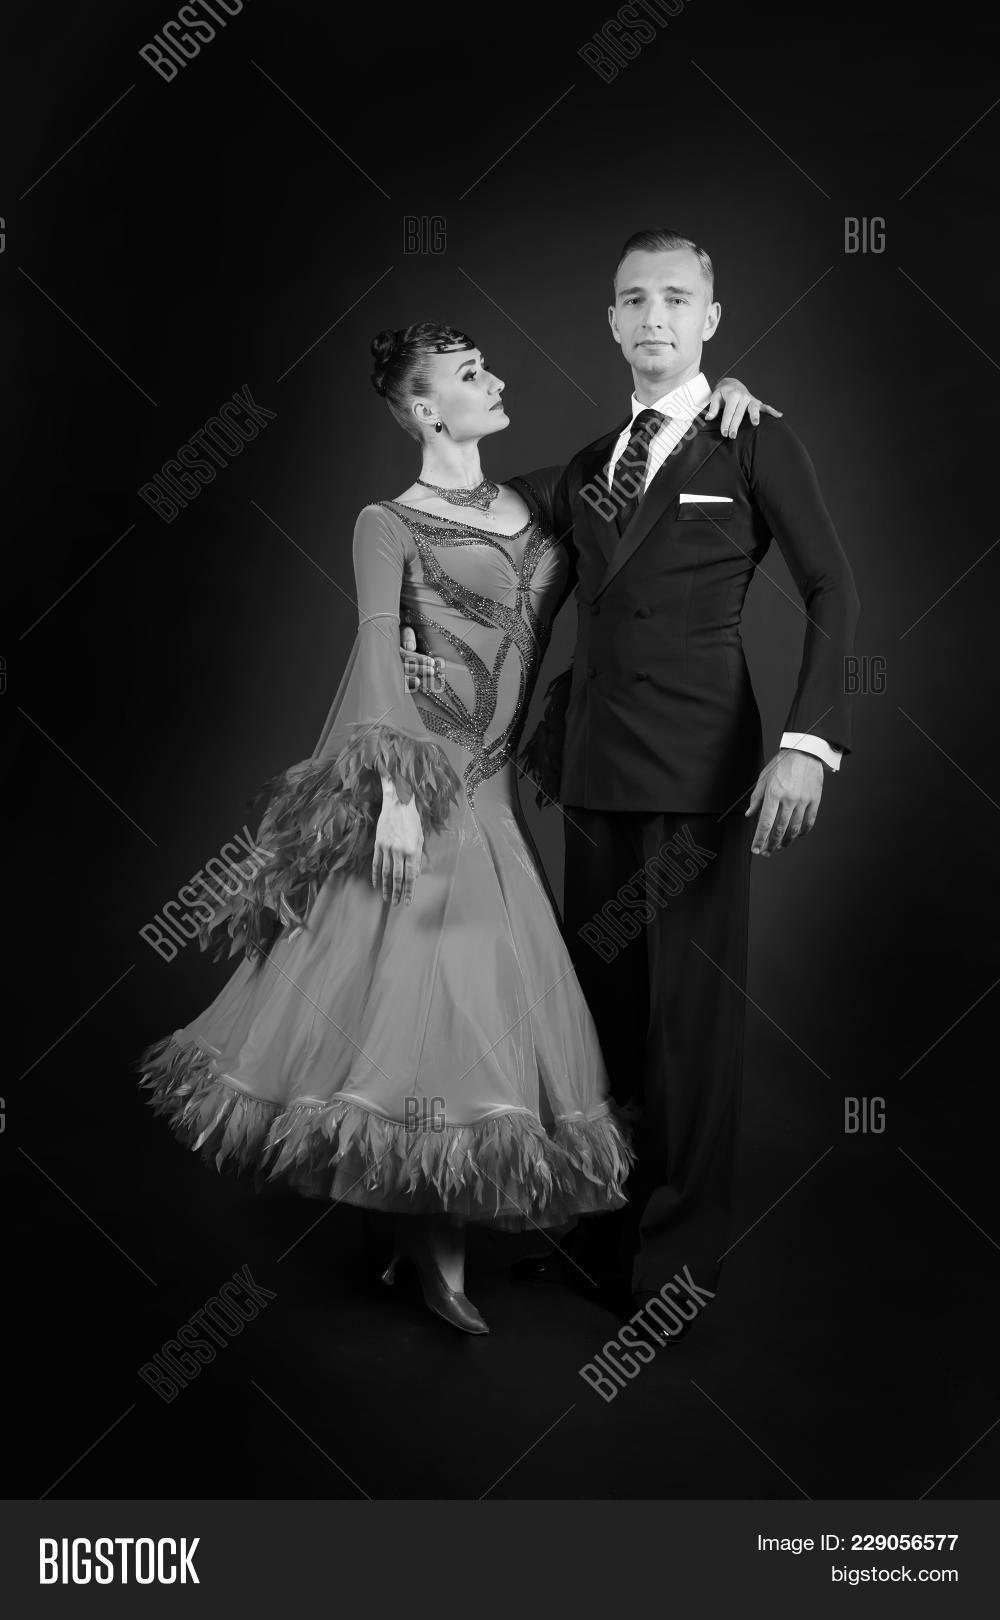 191fa68f1f7e Ballroom couple in love, dance couple in dress and tuxedo on dark  background. Valentines day concept. Love, proposal, date. Valentine,  valentines, holiday ...